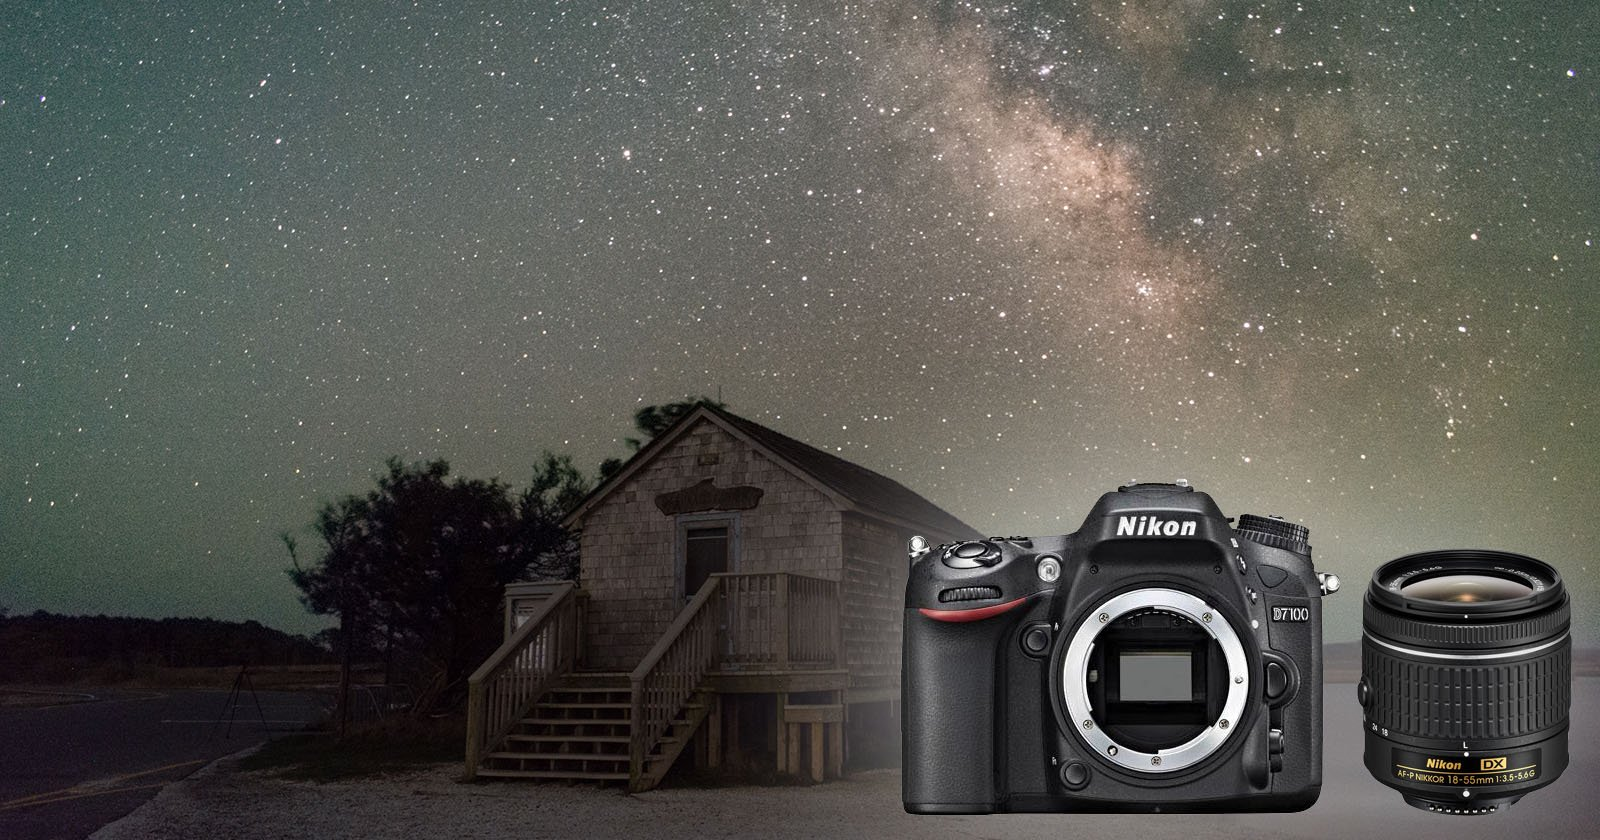 How To Shoot Milky Way Photos With A Crop Sensor Dslr And